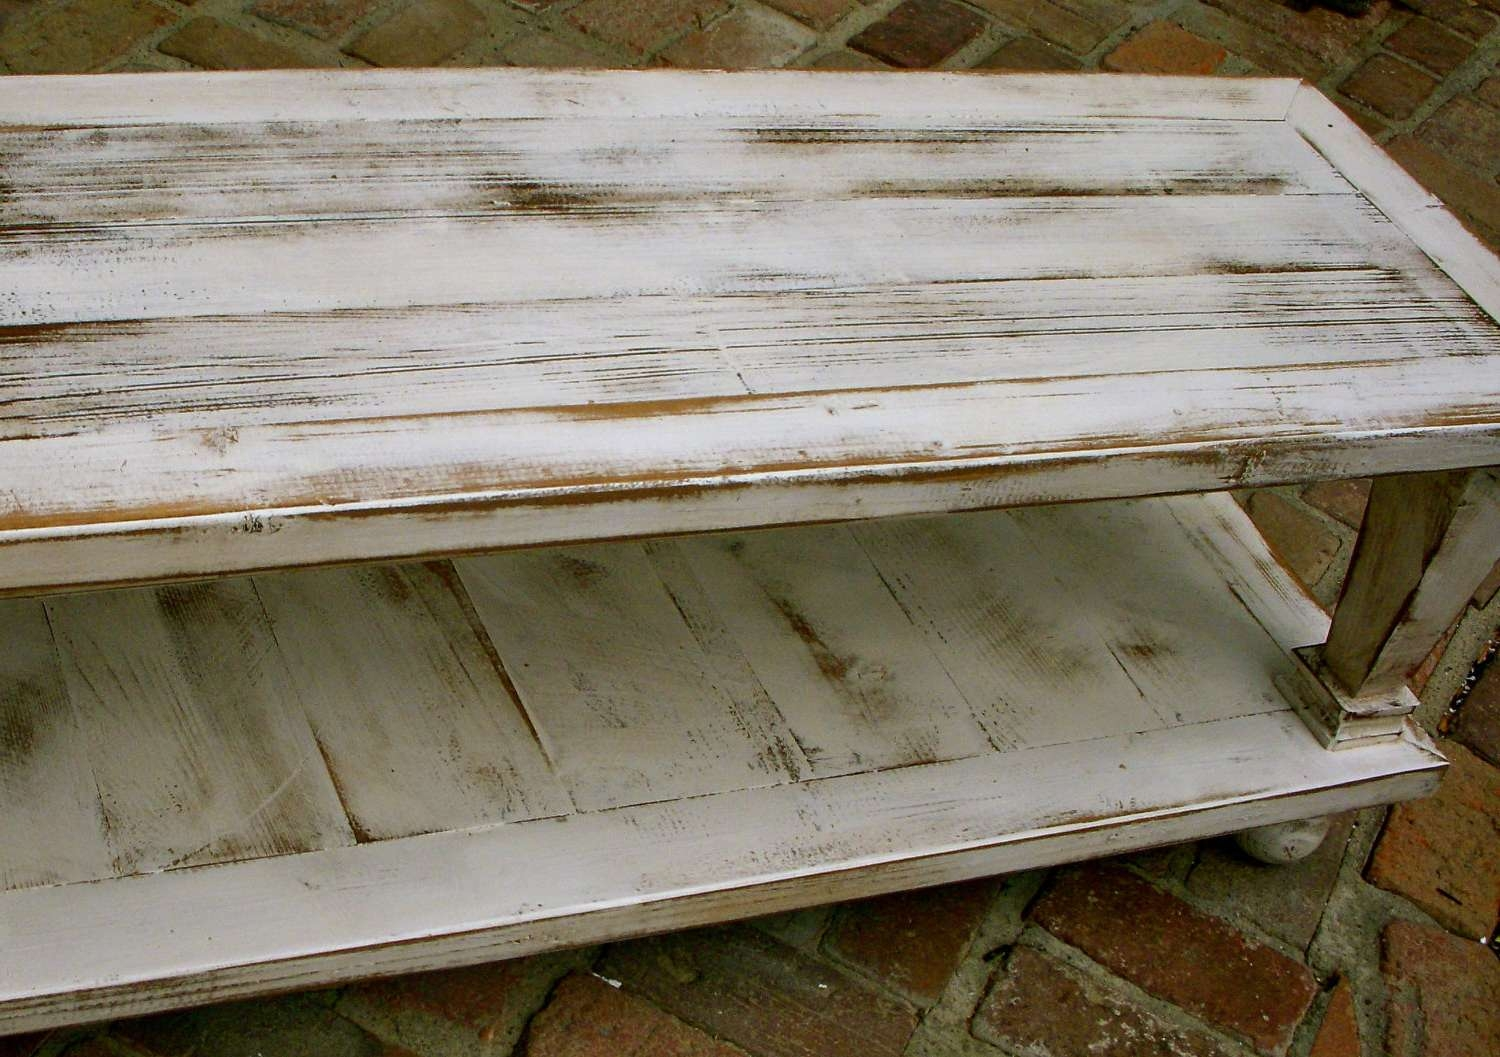 Fashionable Handmade Wooden Coffee Tables Throughout 45 X 30 X 16 Wooden Coffee Table Rustic Wood Furniture (View 8 of 20)